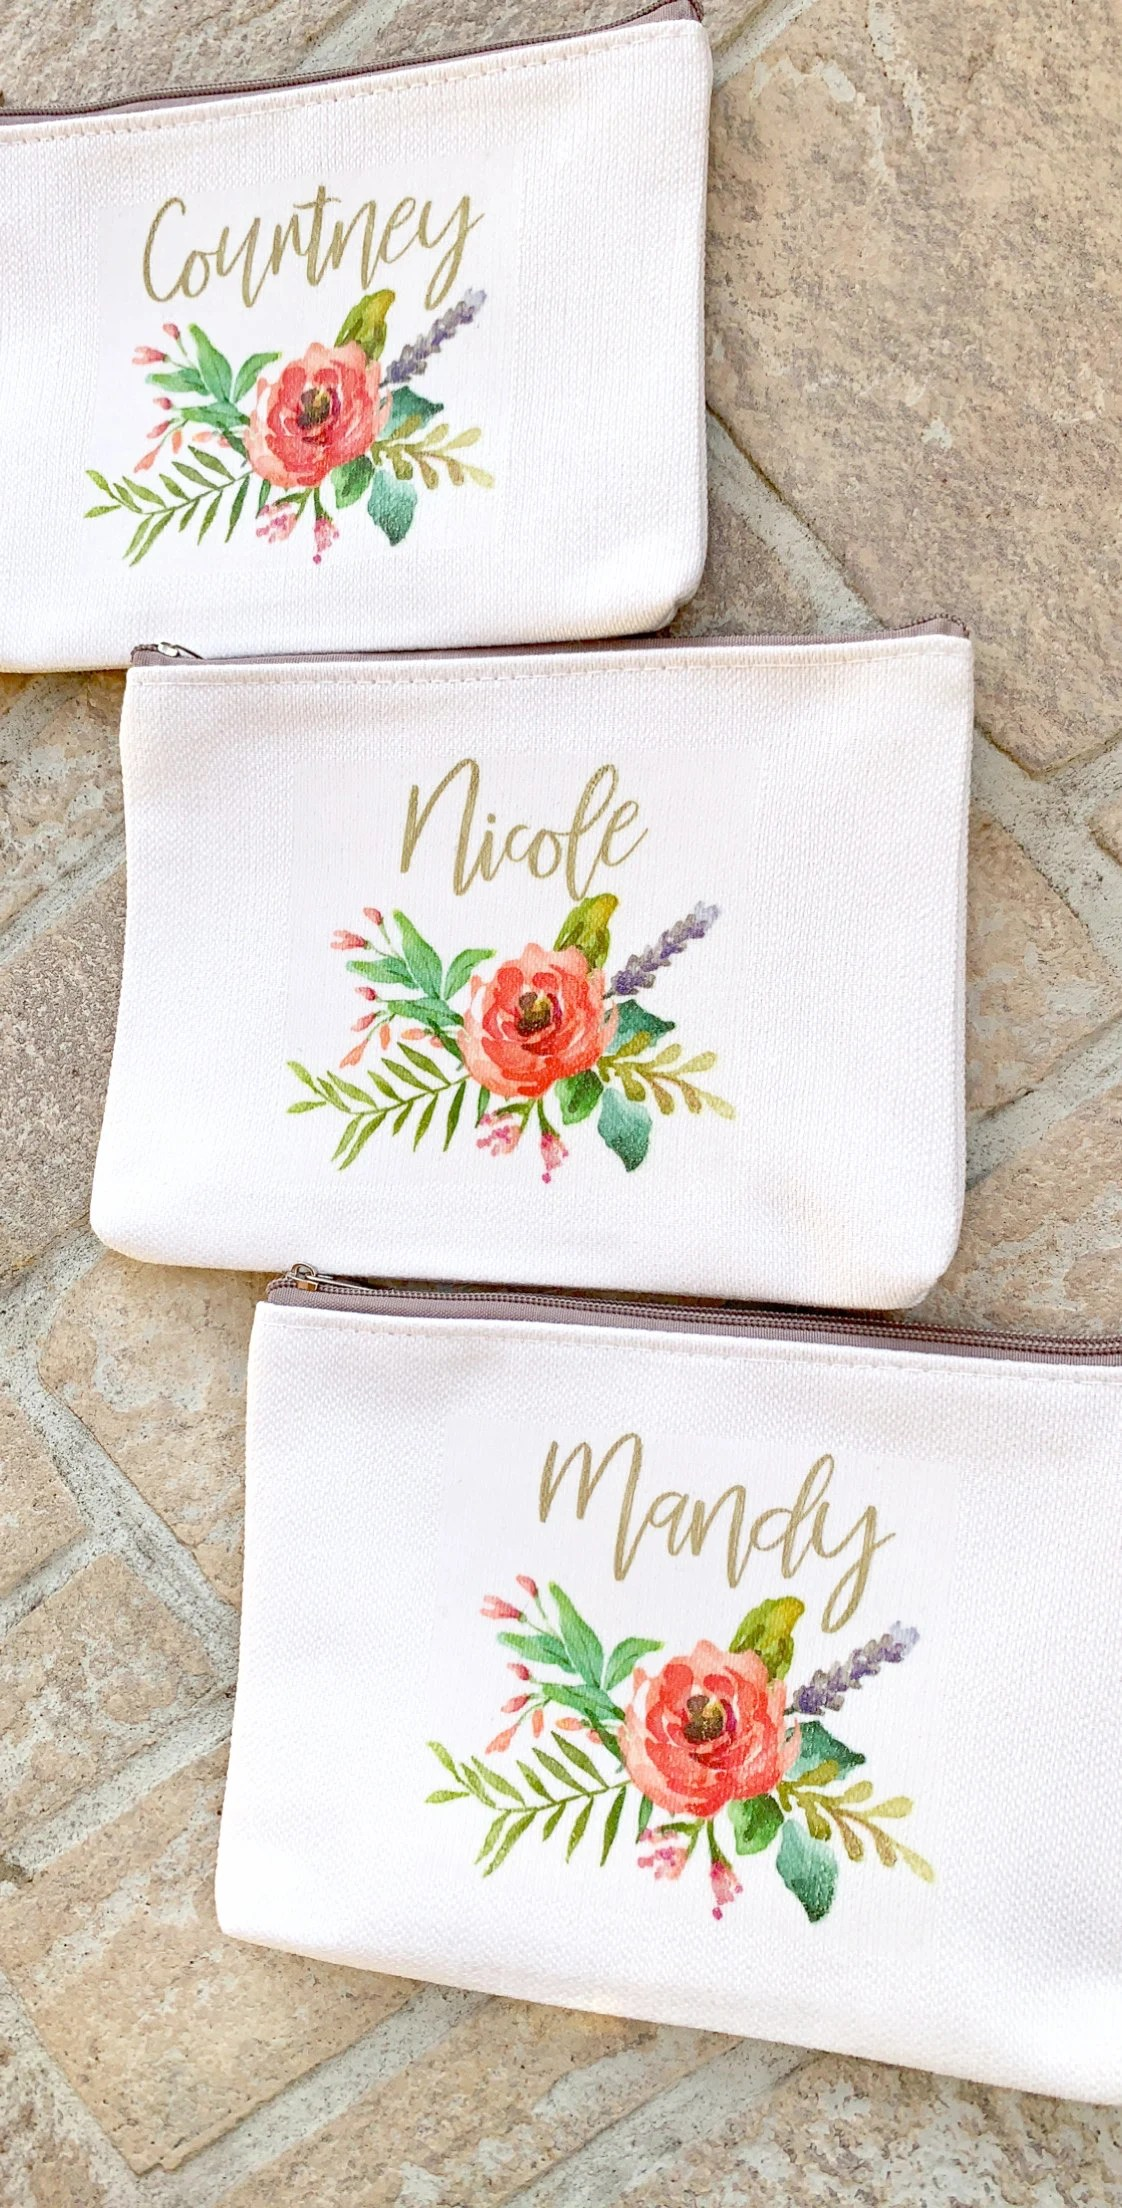 Personalized Makeup Bag Wedding Party Gift for Bridesmaids image 5